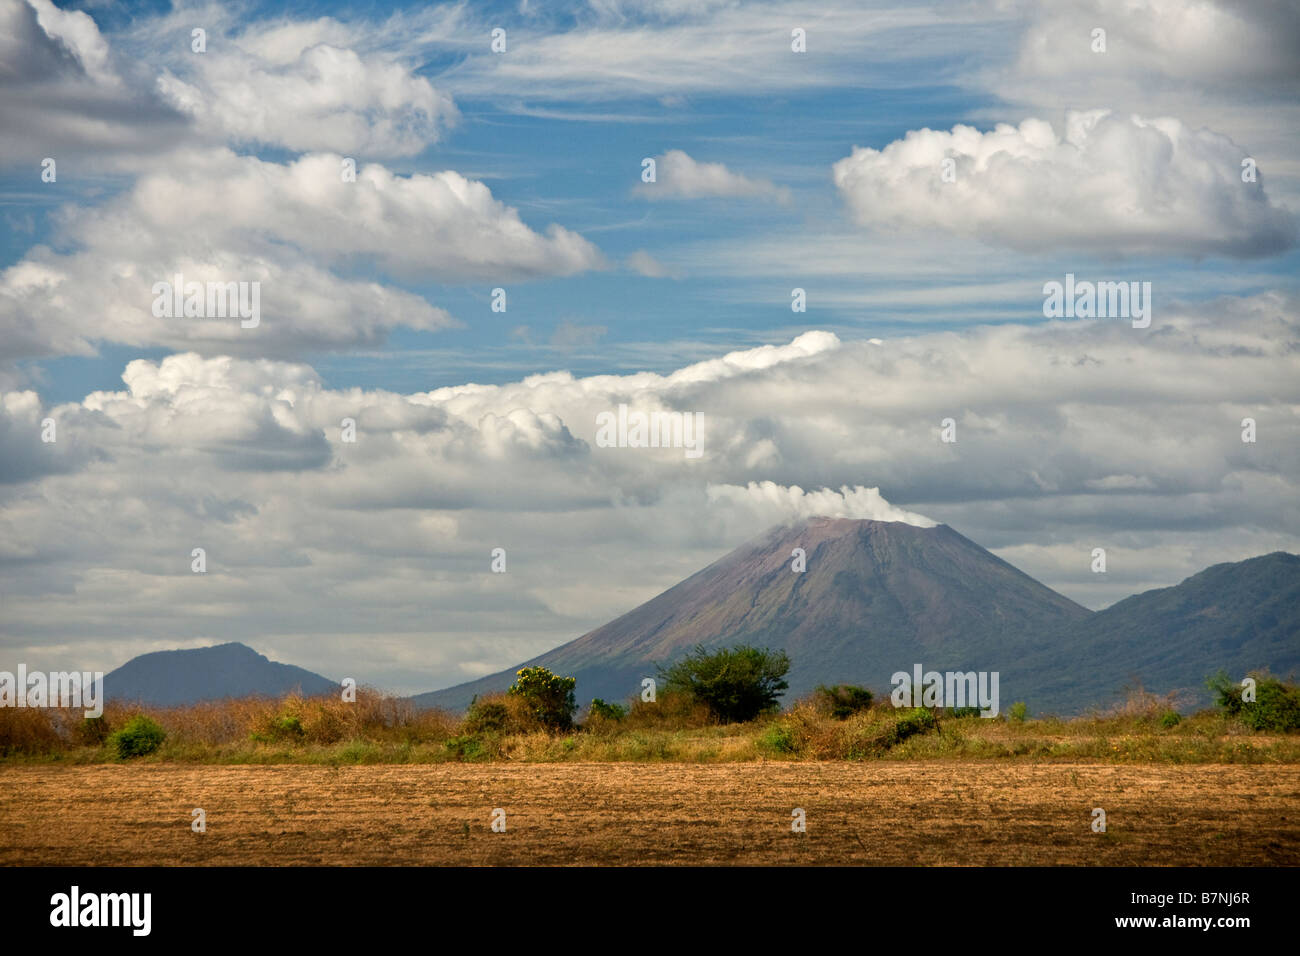 San Cristobal, active cone-shaped smoking volcano, is highest in Nicaragua - Stock Image